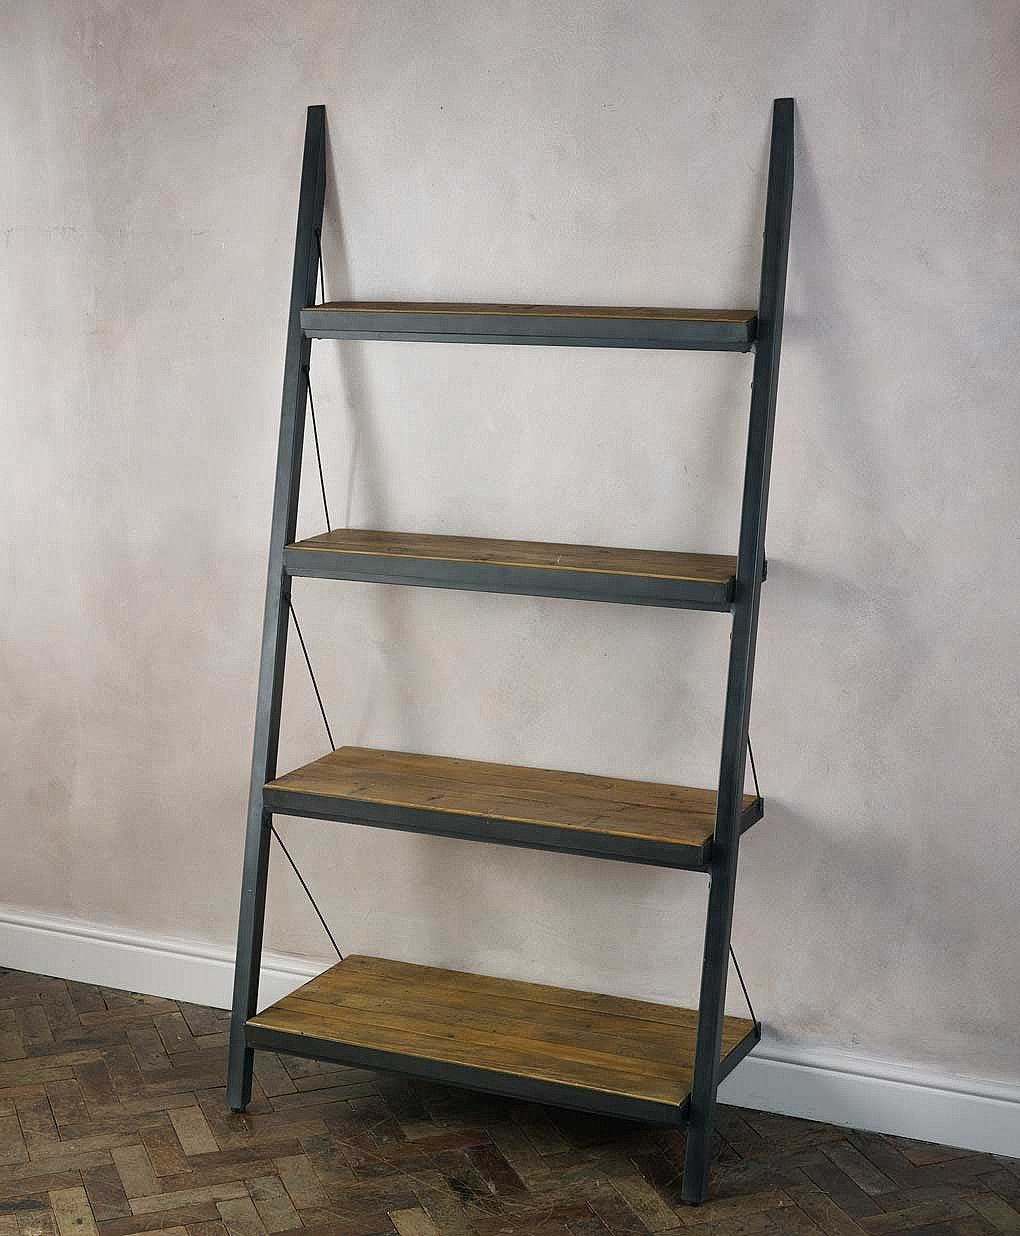 Baxter Industrial Shelving Design With Sloping Leaning